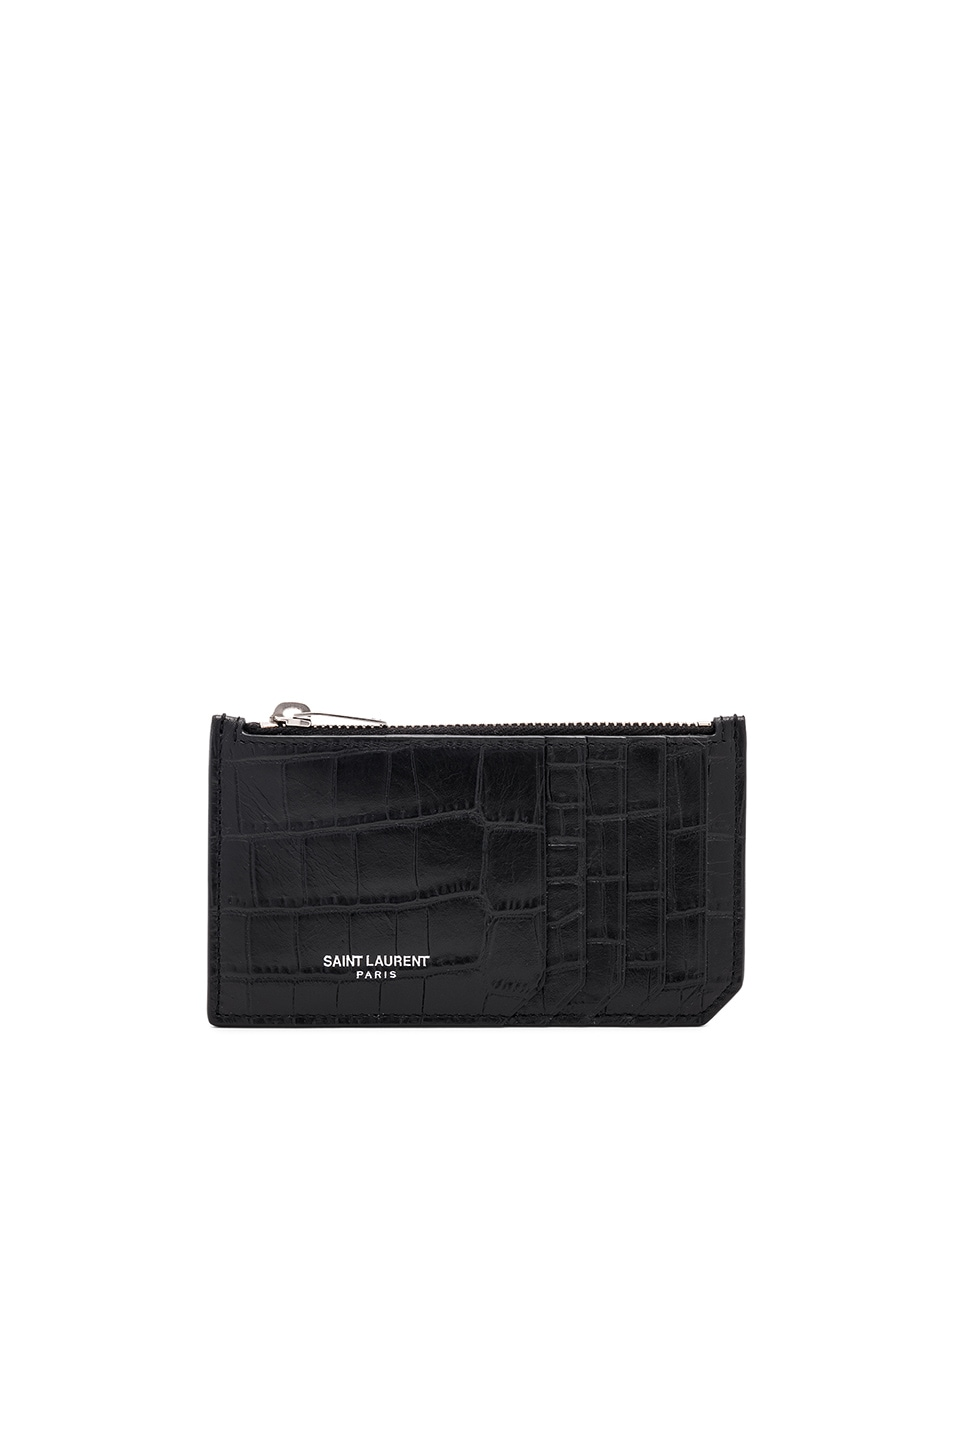 Image 1 of Saint Laurent Matte Croc Zipped Fragments Credit Card Case in Black